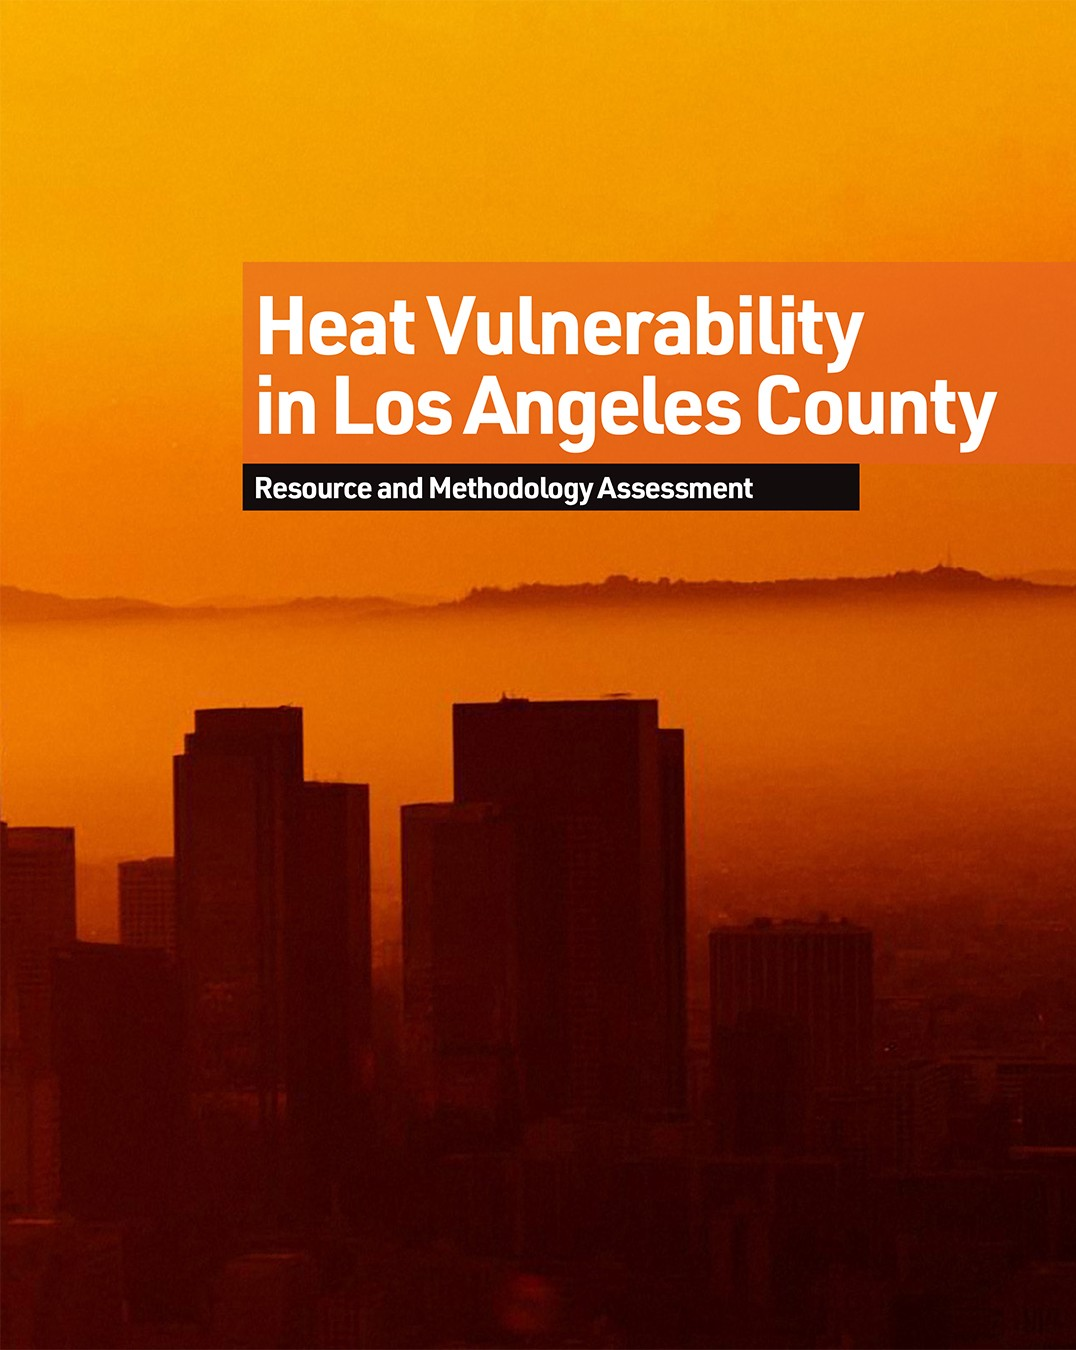 Heat Vulnerability in Los Angeles County